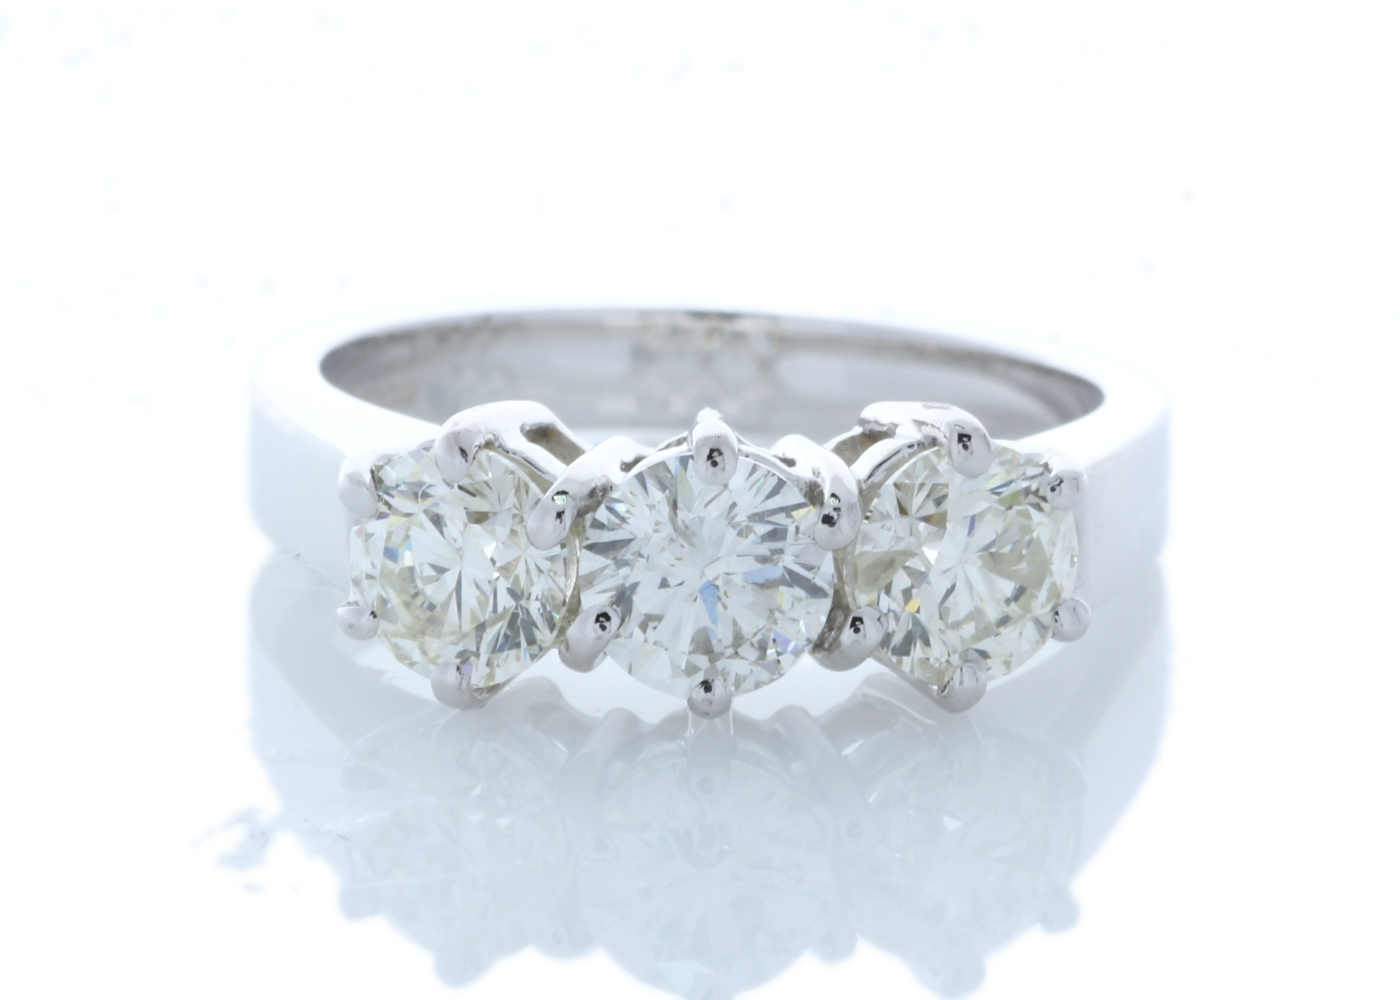 Lot 28 - 18ct White Gold Three Stone Claw Set Diamond Ring 1.52 Carats